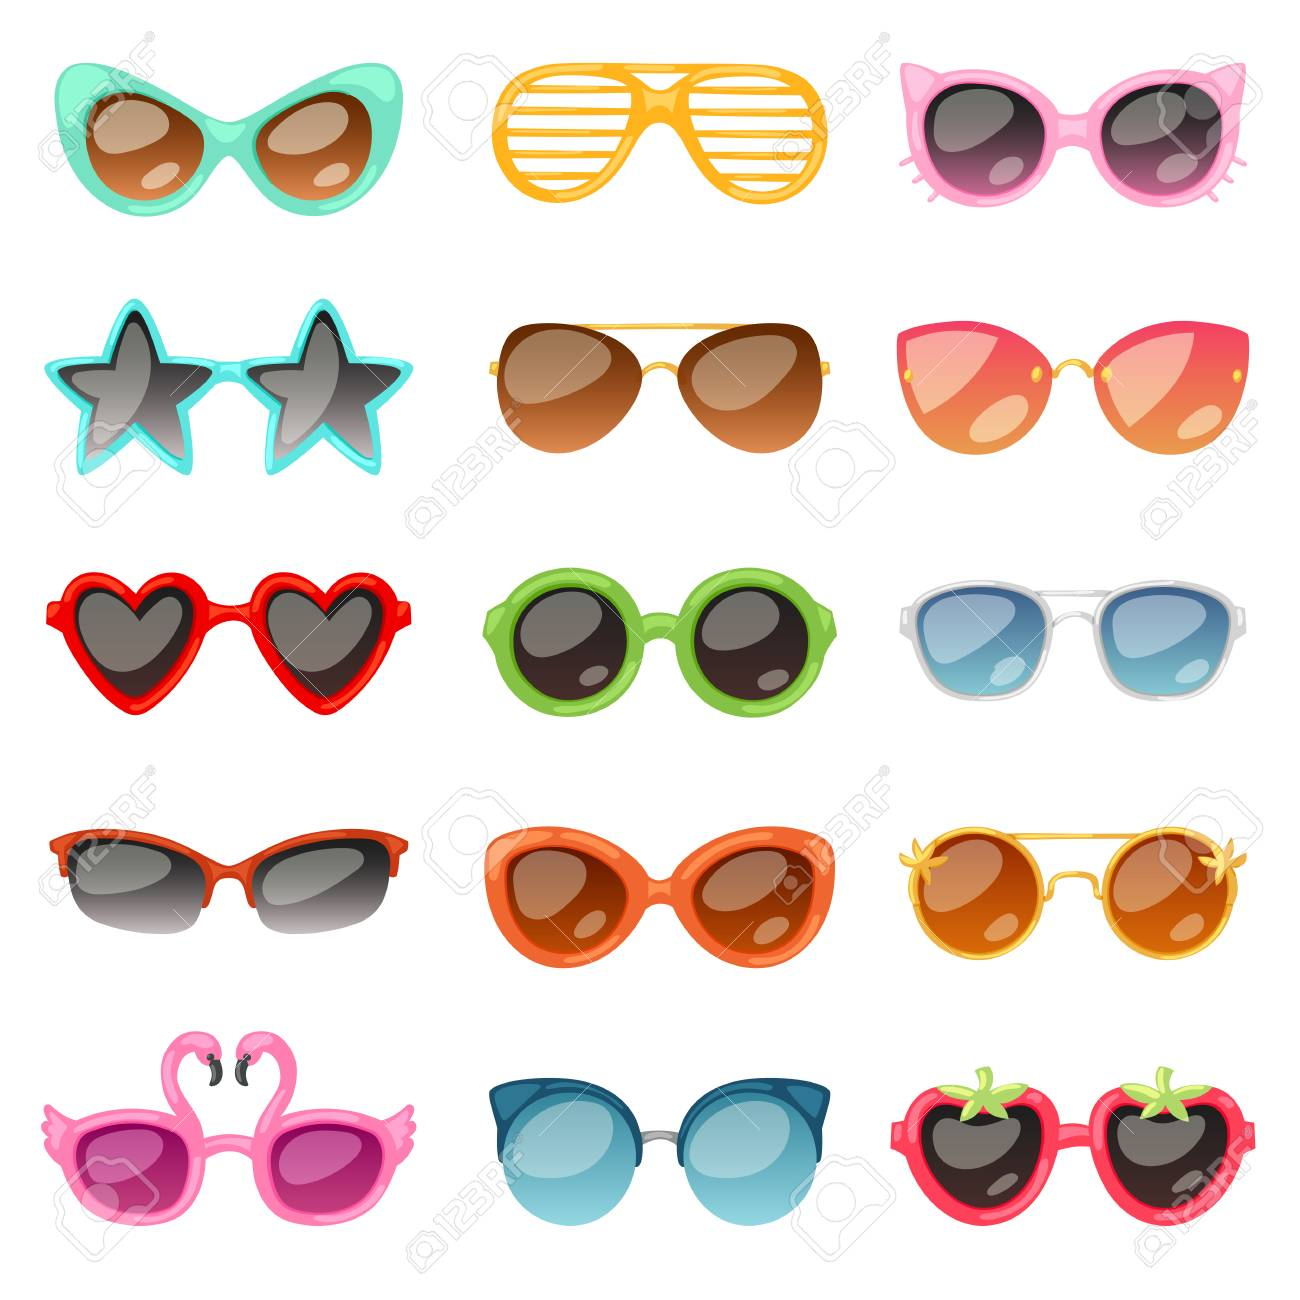 Glasses vector cartoon eyeglasses or sunglasses in stylish shapes for party and fashion optical spectacles set of eyesight view accessories illustration isolated on white background - 100126109